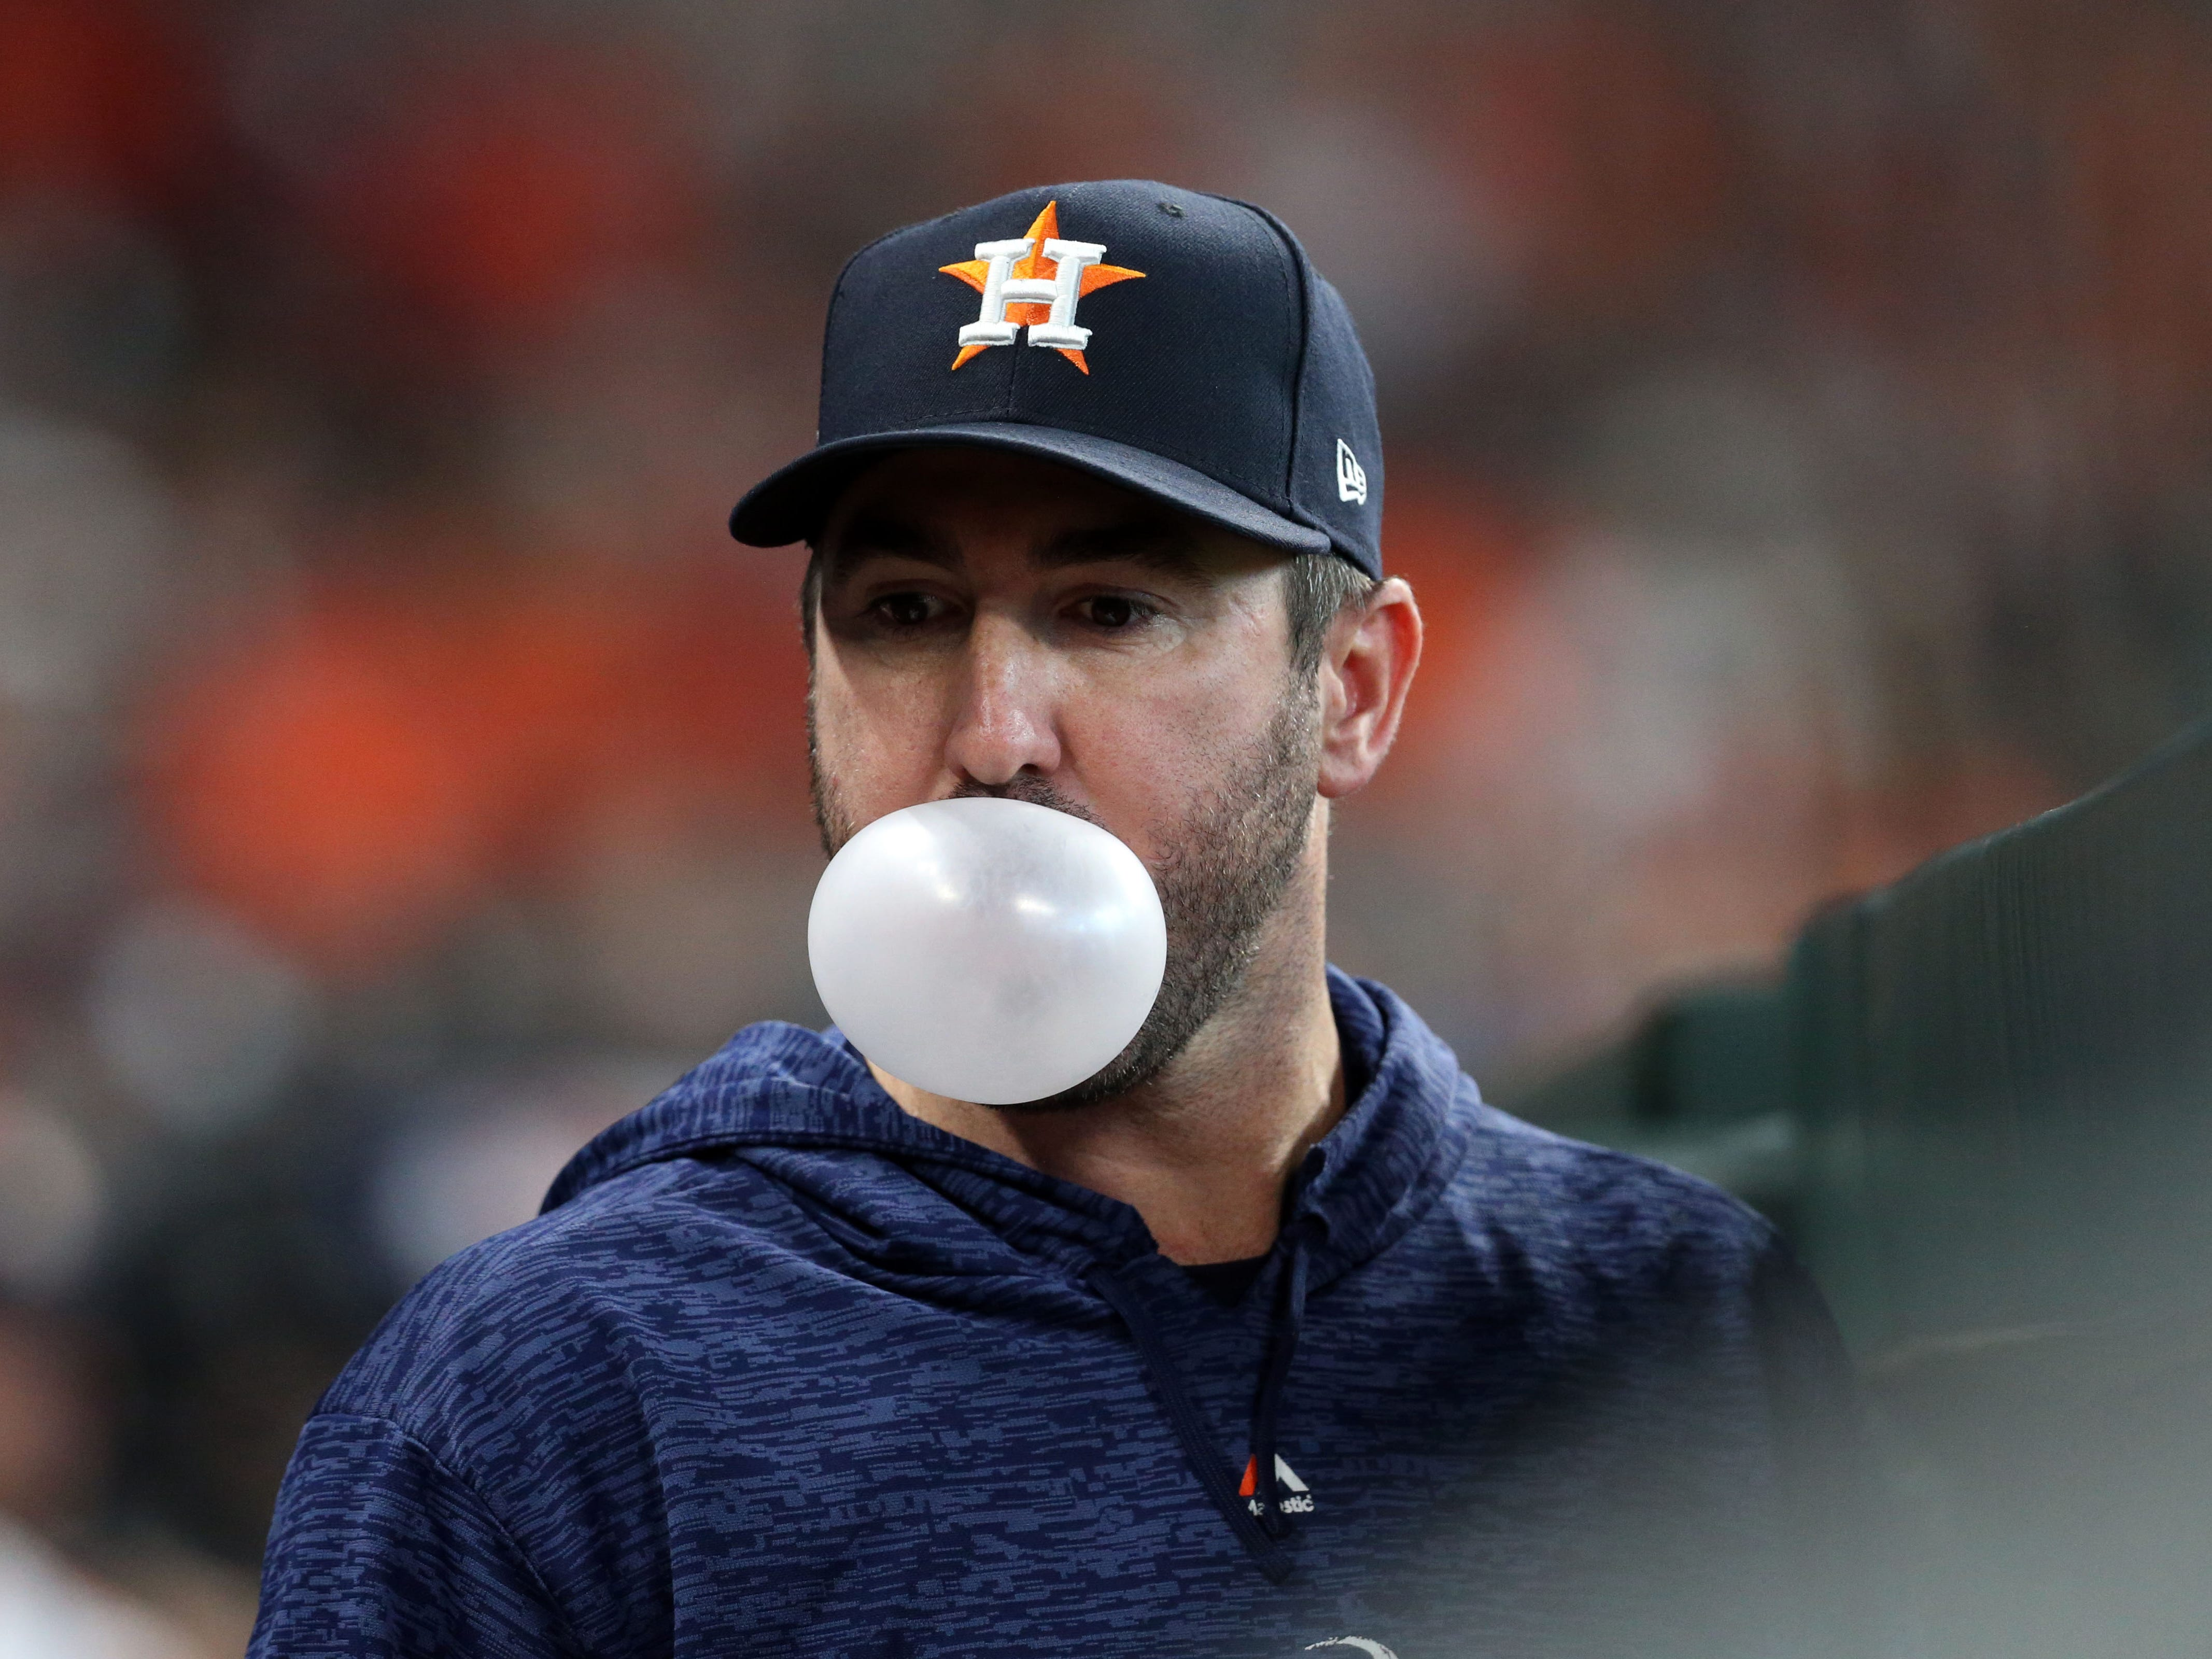 ALDS Game 2: Bubble gum anyone? Astros starting pitcher Justin Verlander shows off his skills.